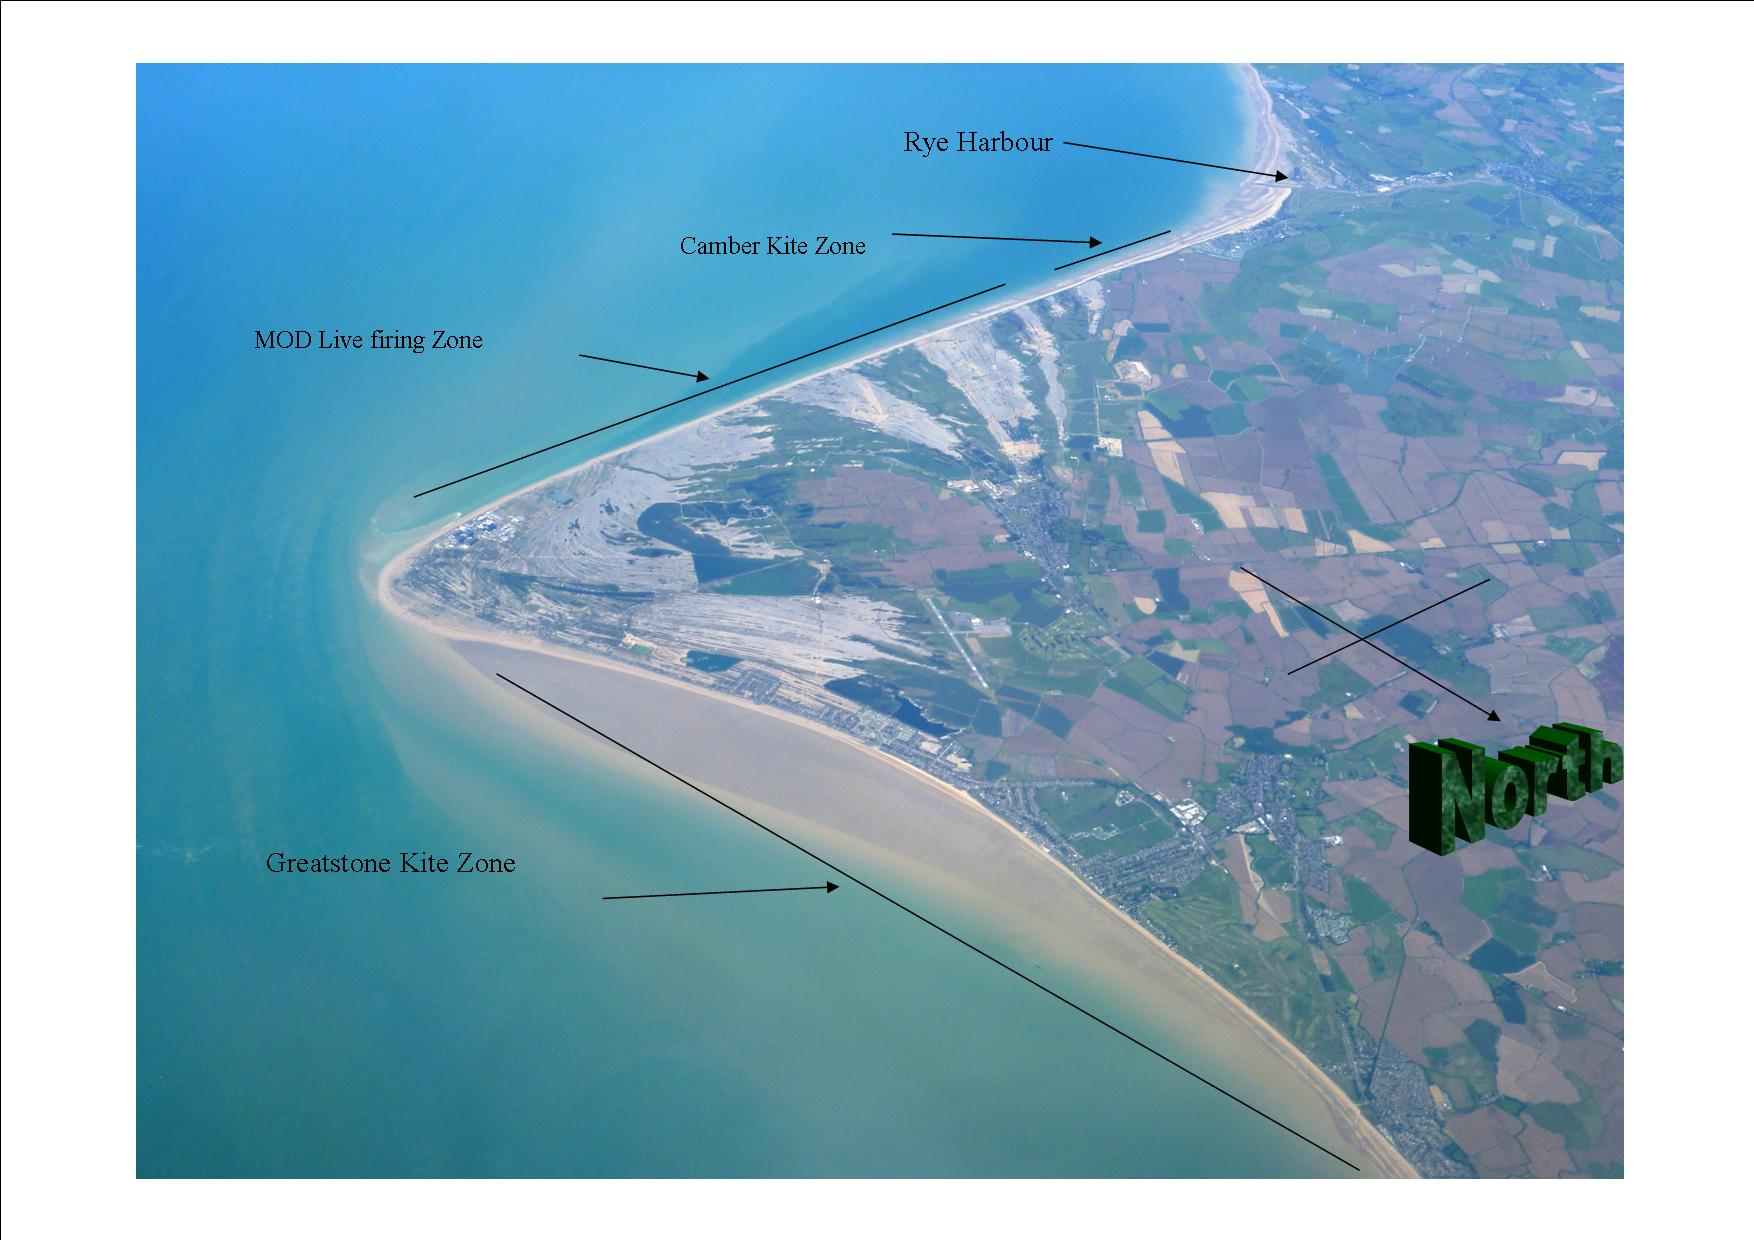 Camber and Greatstone kitesurfing zones